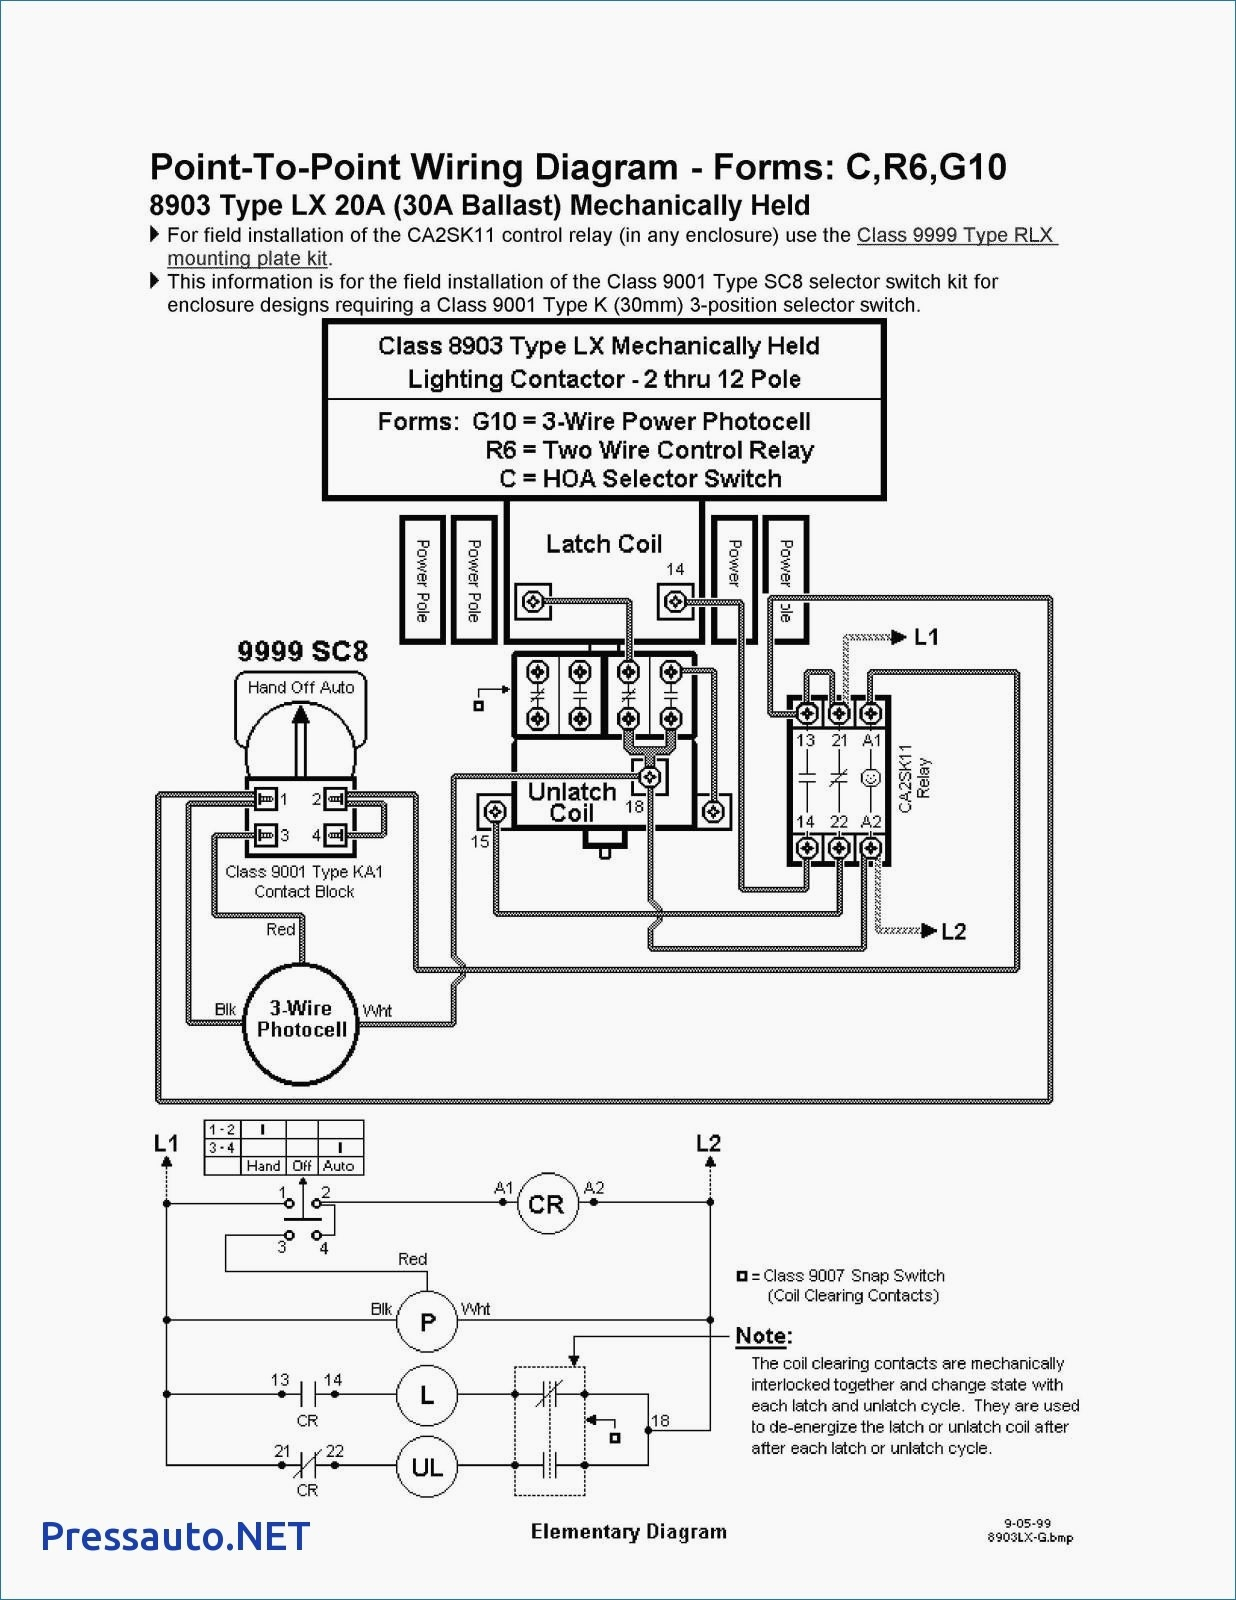 square d lighting contactor class 8903 wiring diagram Download-Attractive Square D Contactor Wiring Diagram Model Electrical Lamp Wiring Diagram Best Eaton Lighting Contactor 10-r